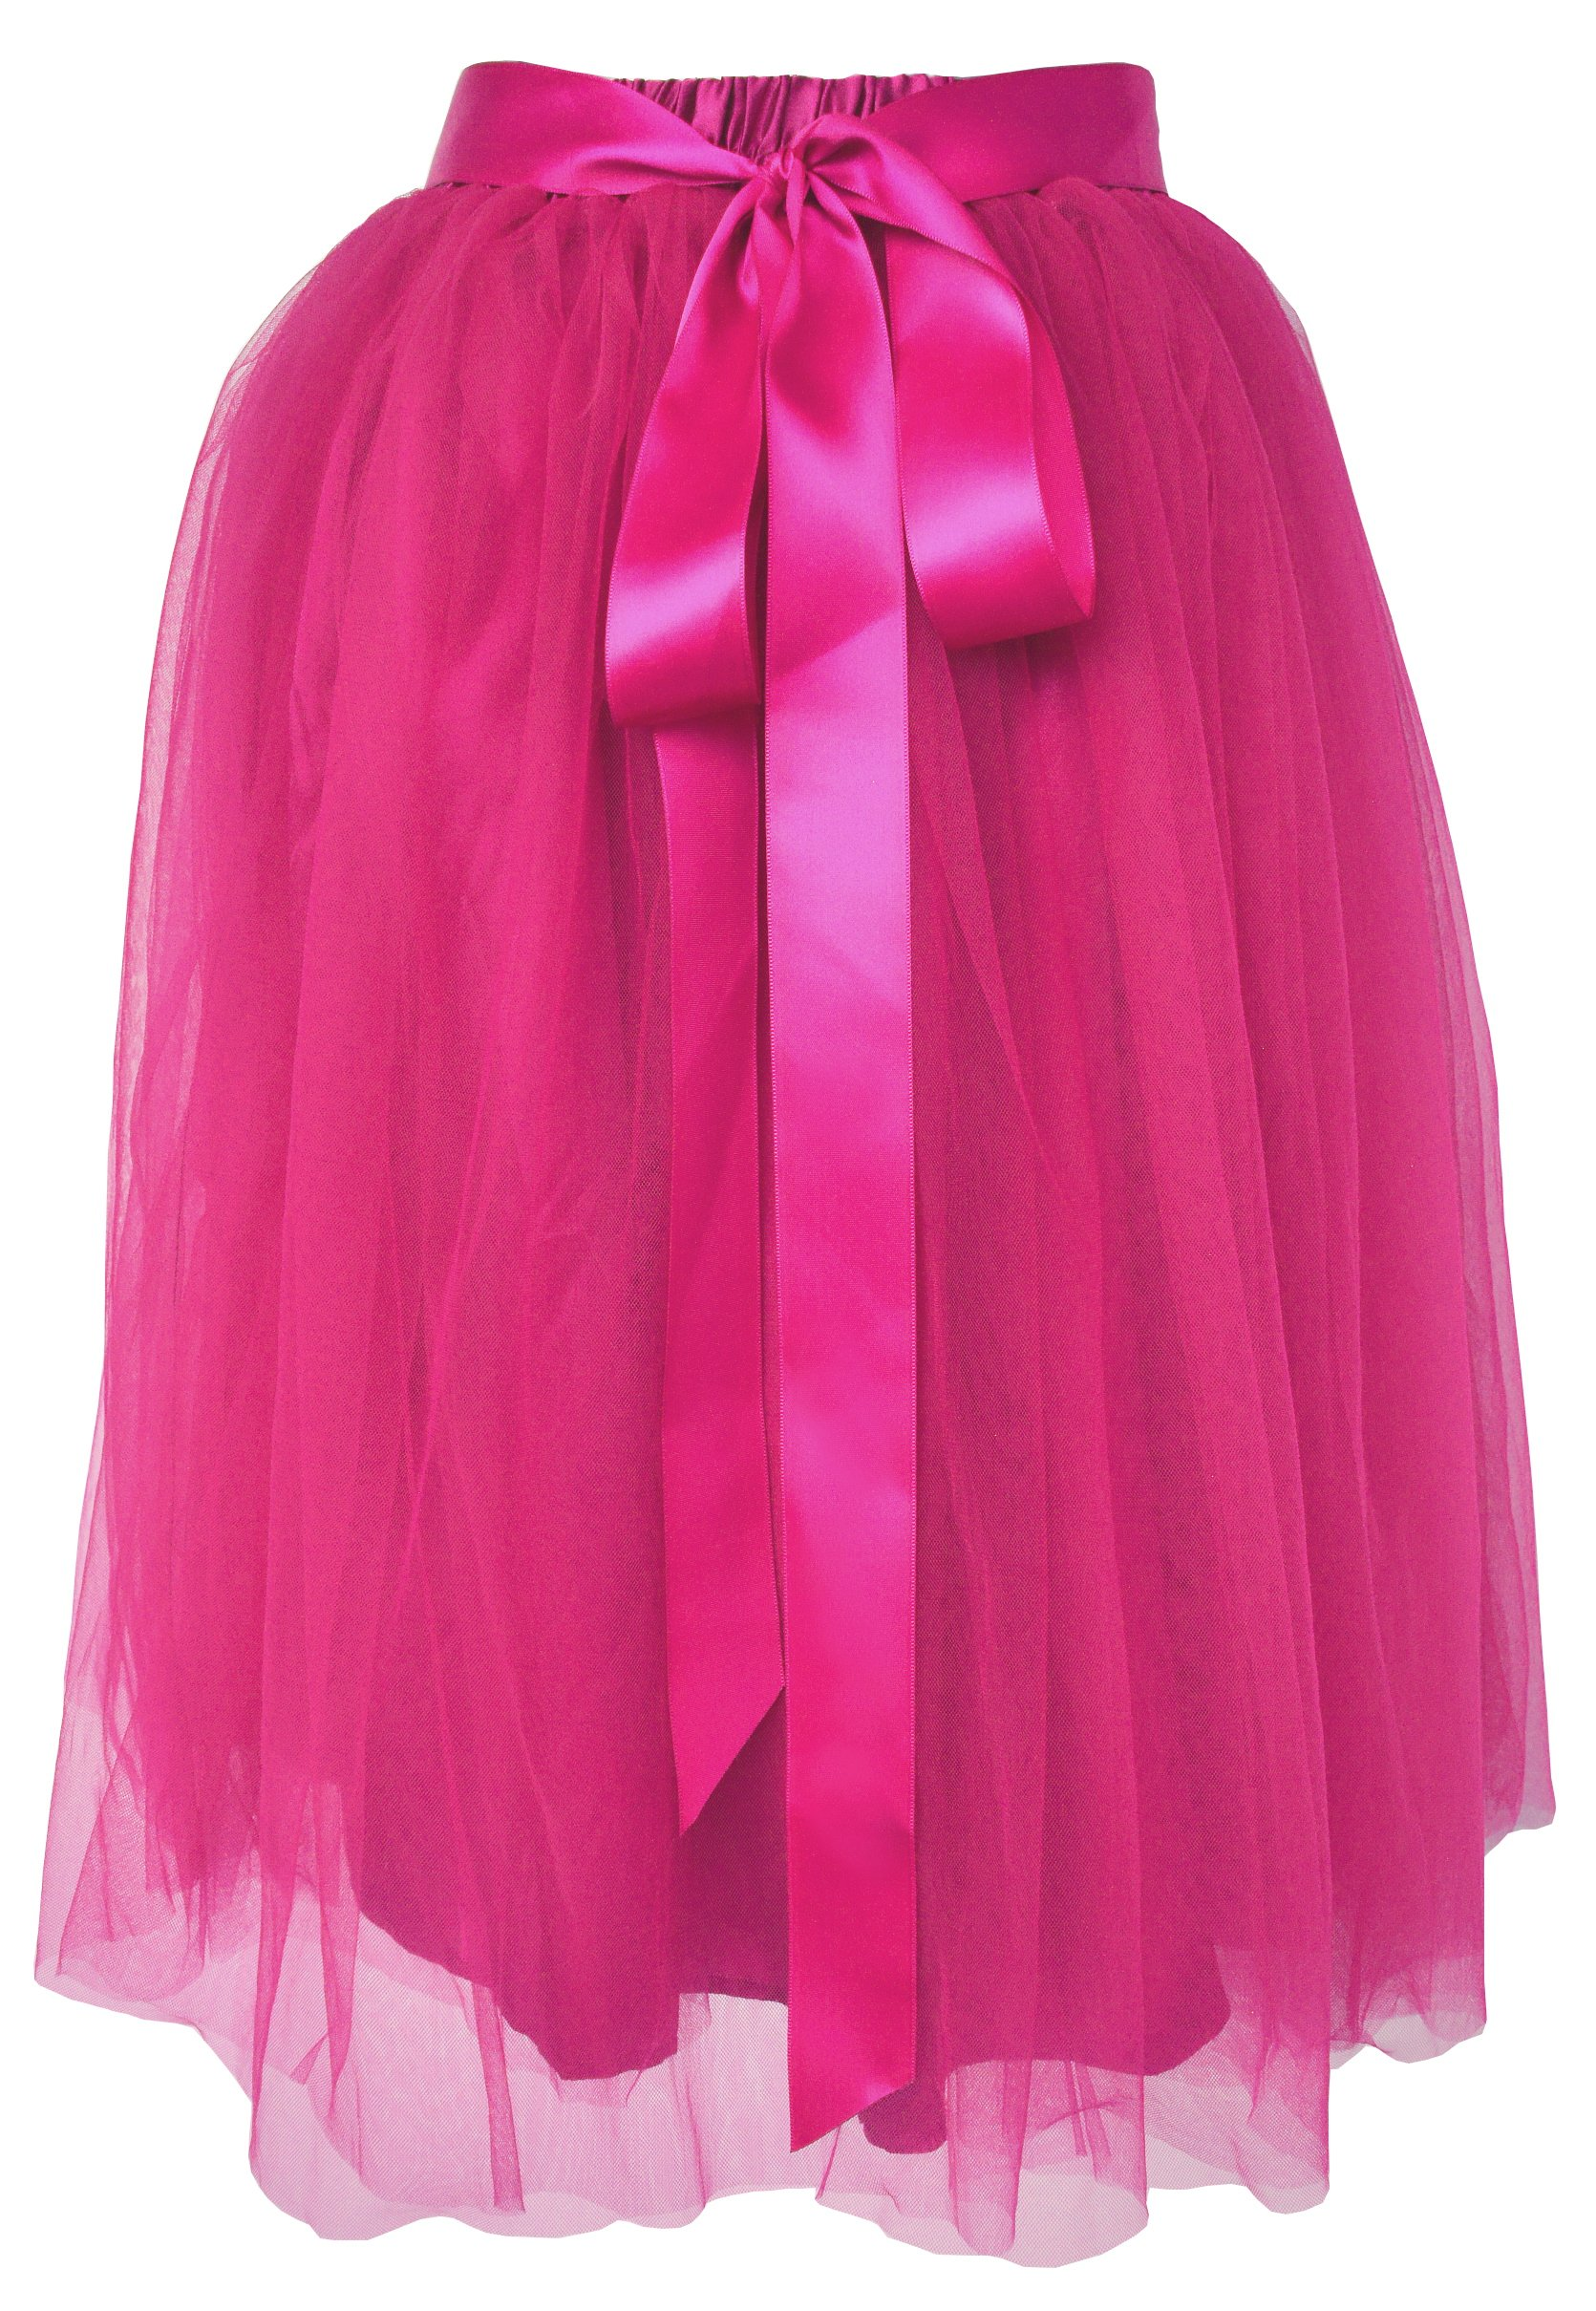 Dancina Women's Knee Length Tutu A Line Layered Tulle Skirt Size Regular 2-18 Hotpink